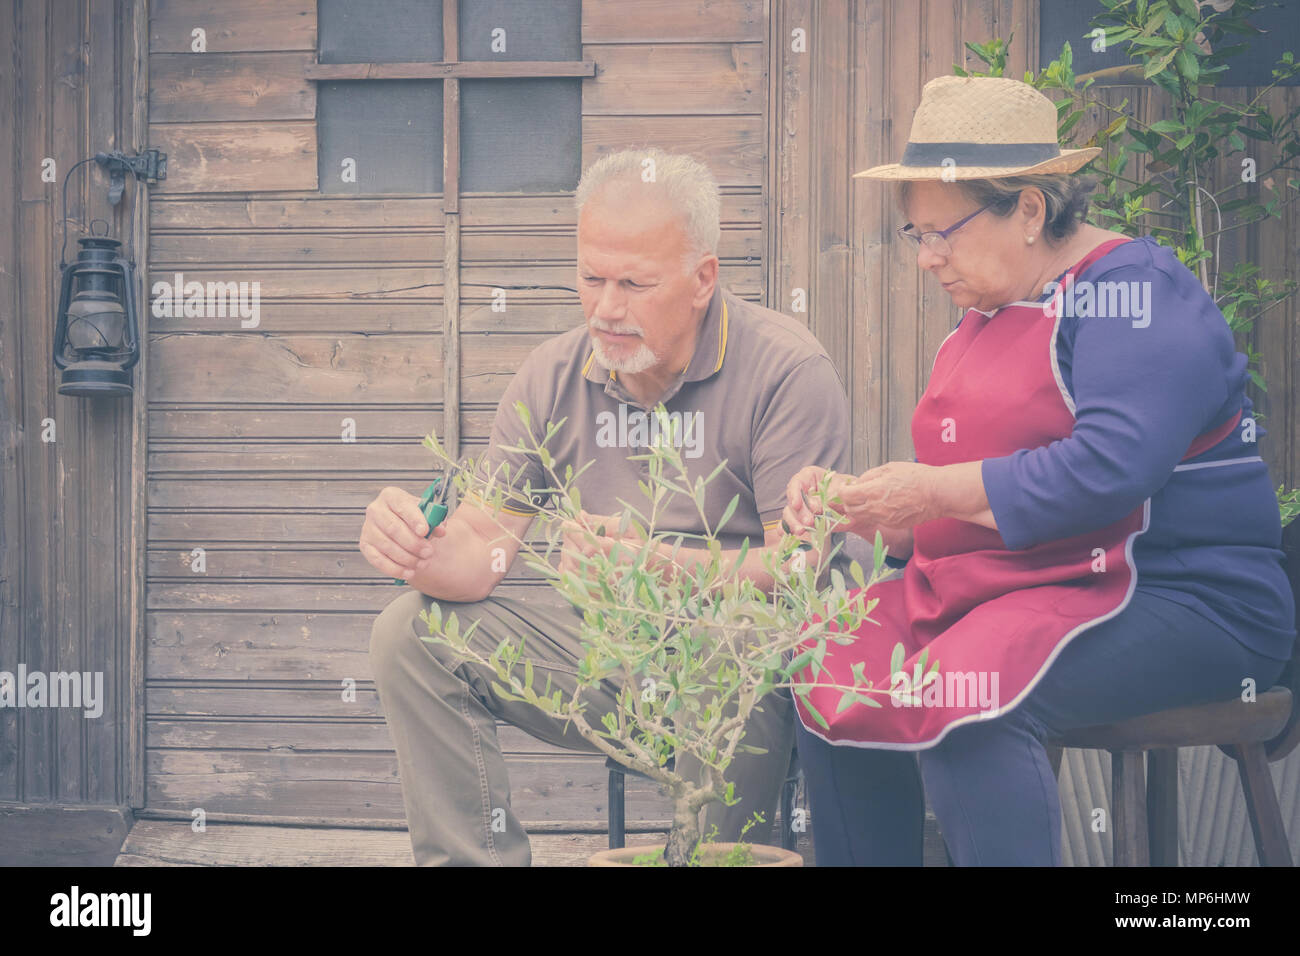 elderly senior couple in countryside like home farm work together, with plants cutting and repair them. family concept of life forever together with l - Stock Image